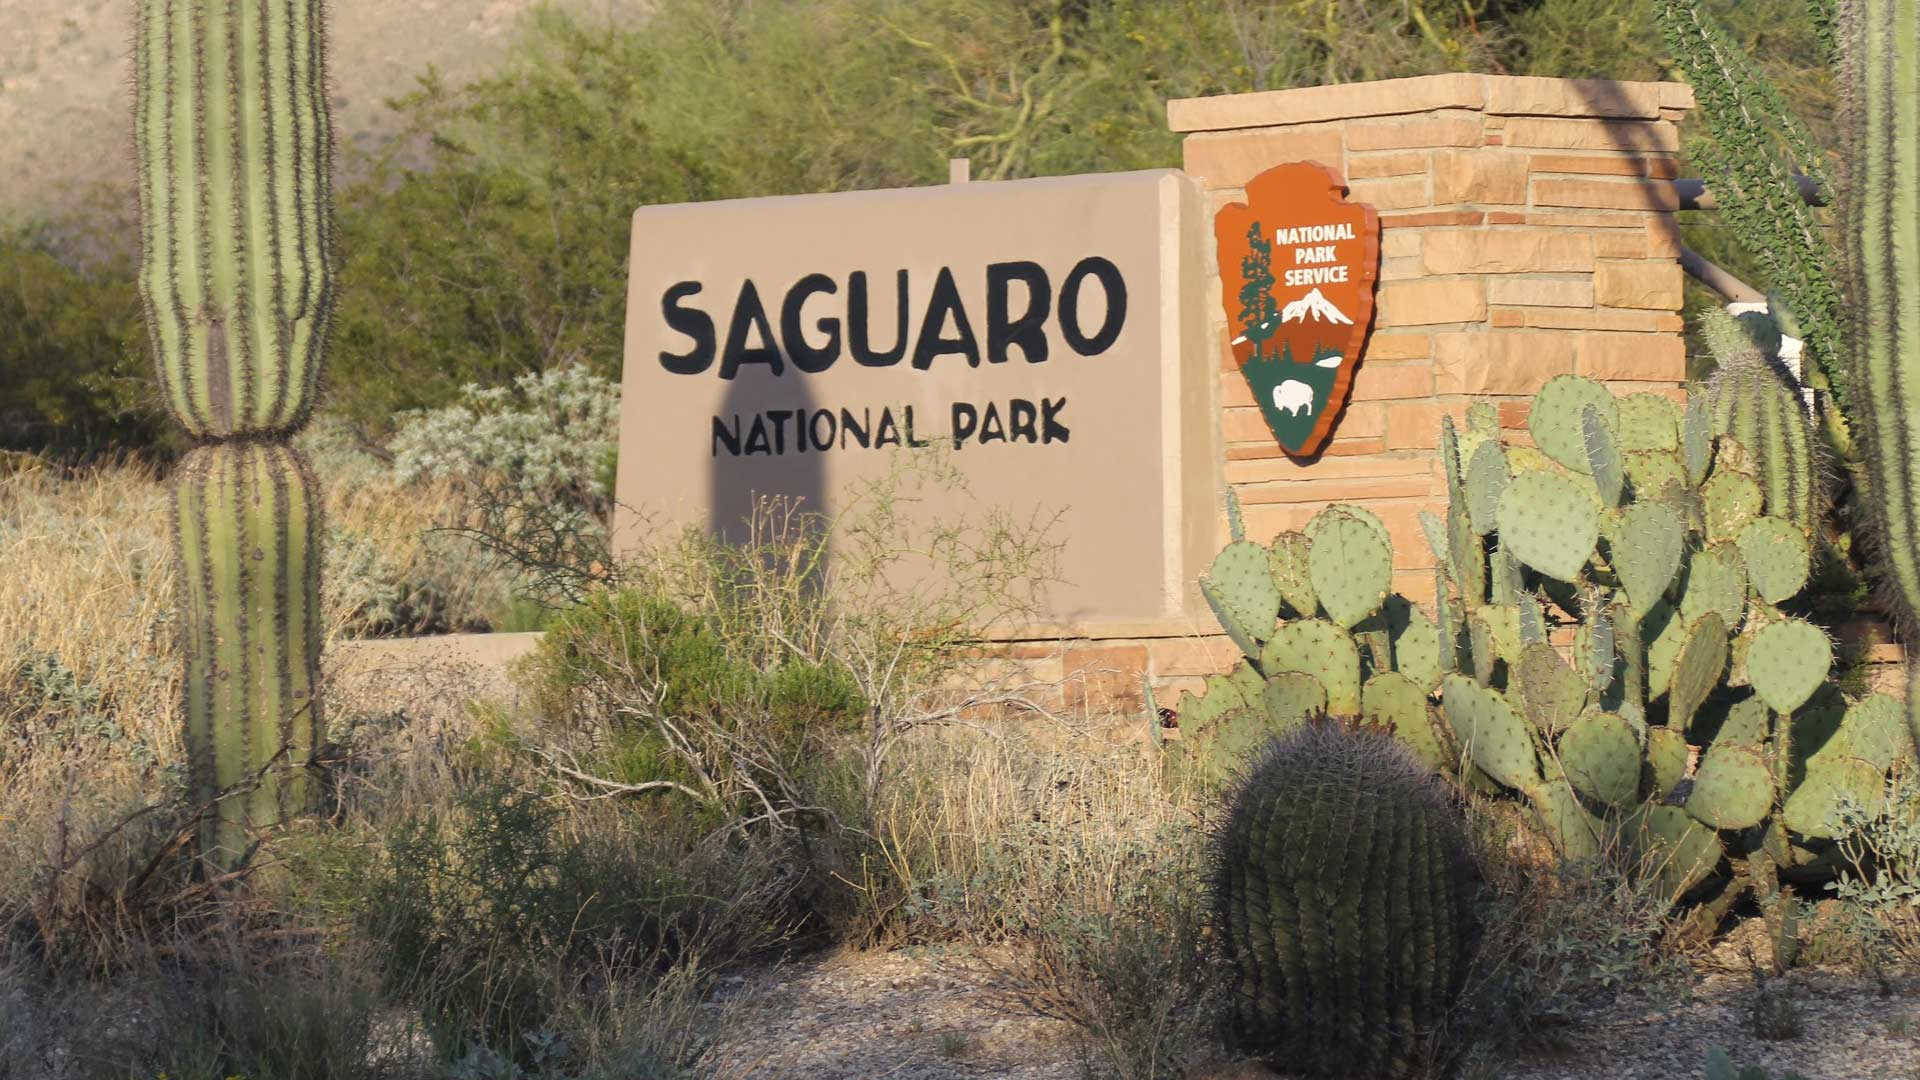 Saguaro National Park East hero